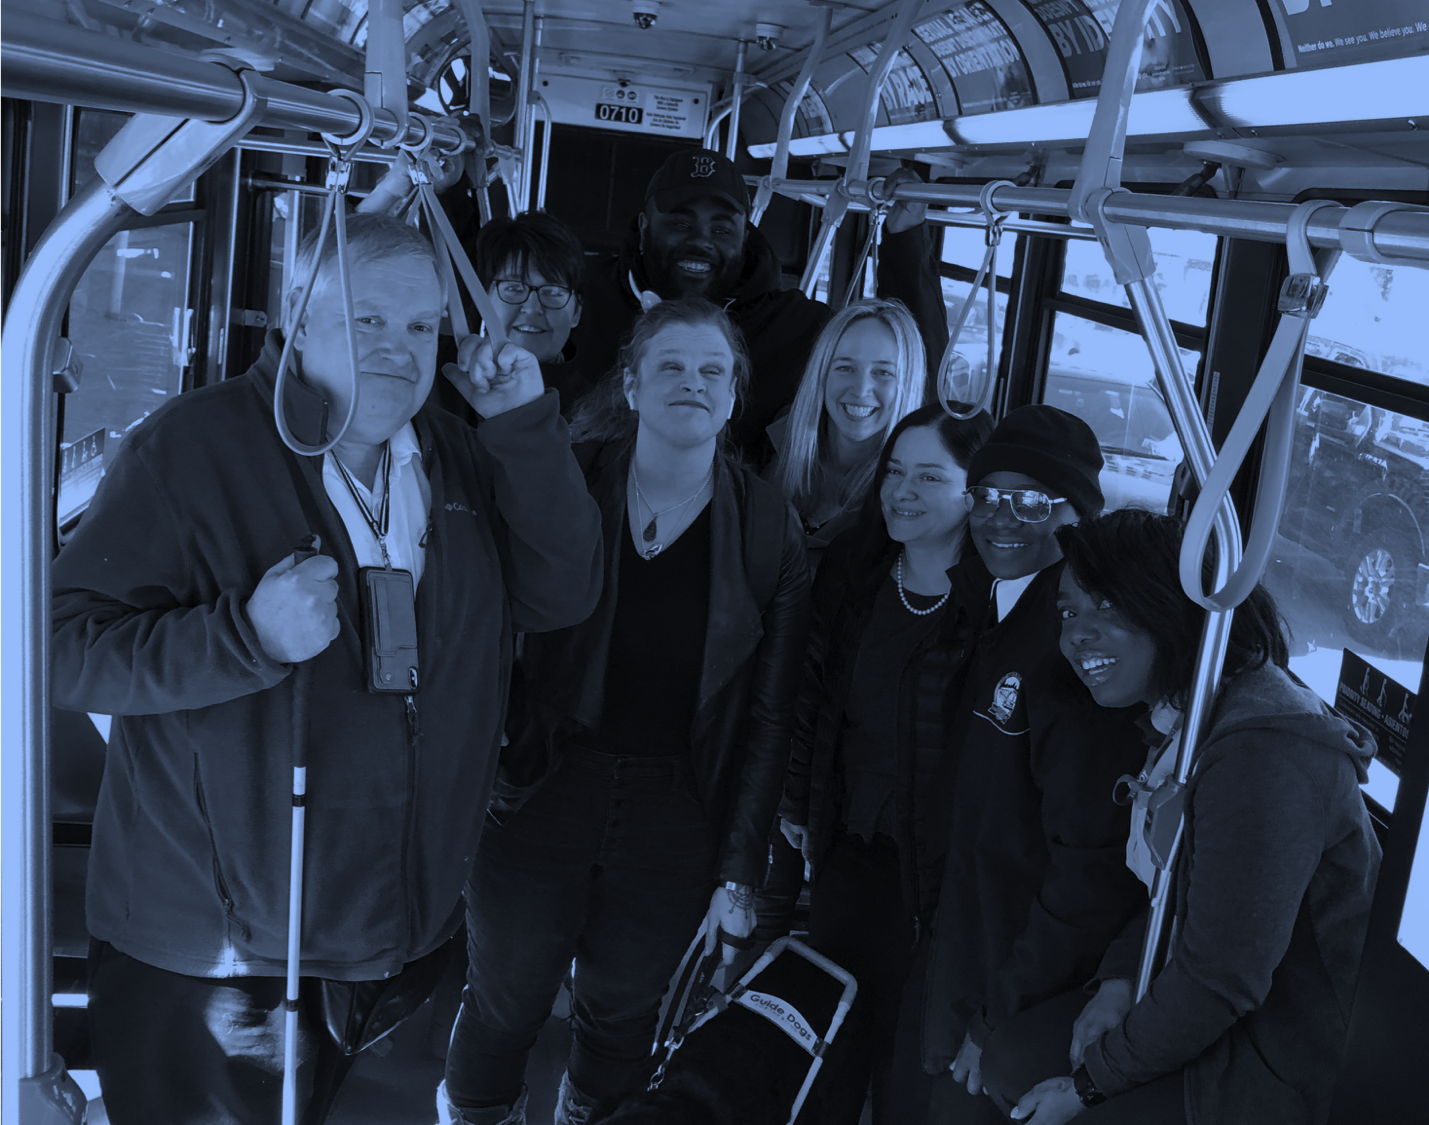 Group of eight people on an MBTA bus smiling with a black dog. The people in the photo worked hard to transform the idea of Access AI into reality. Thanks to all!